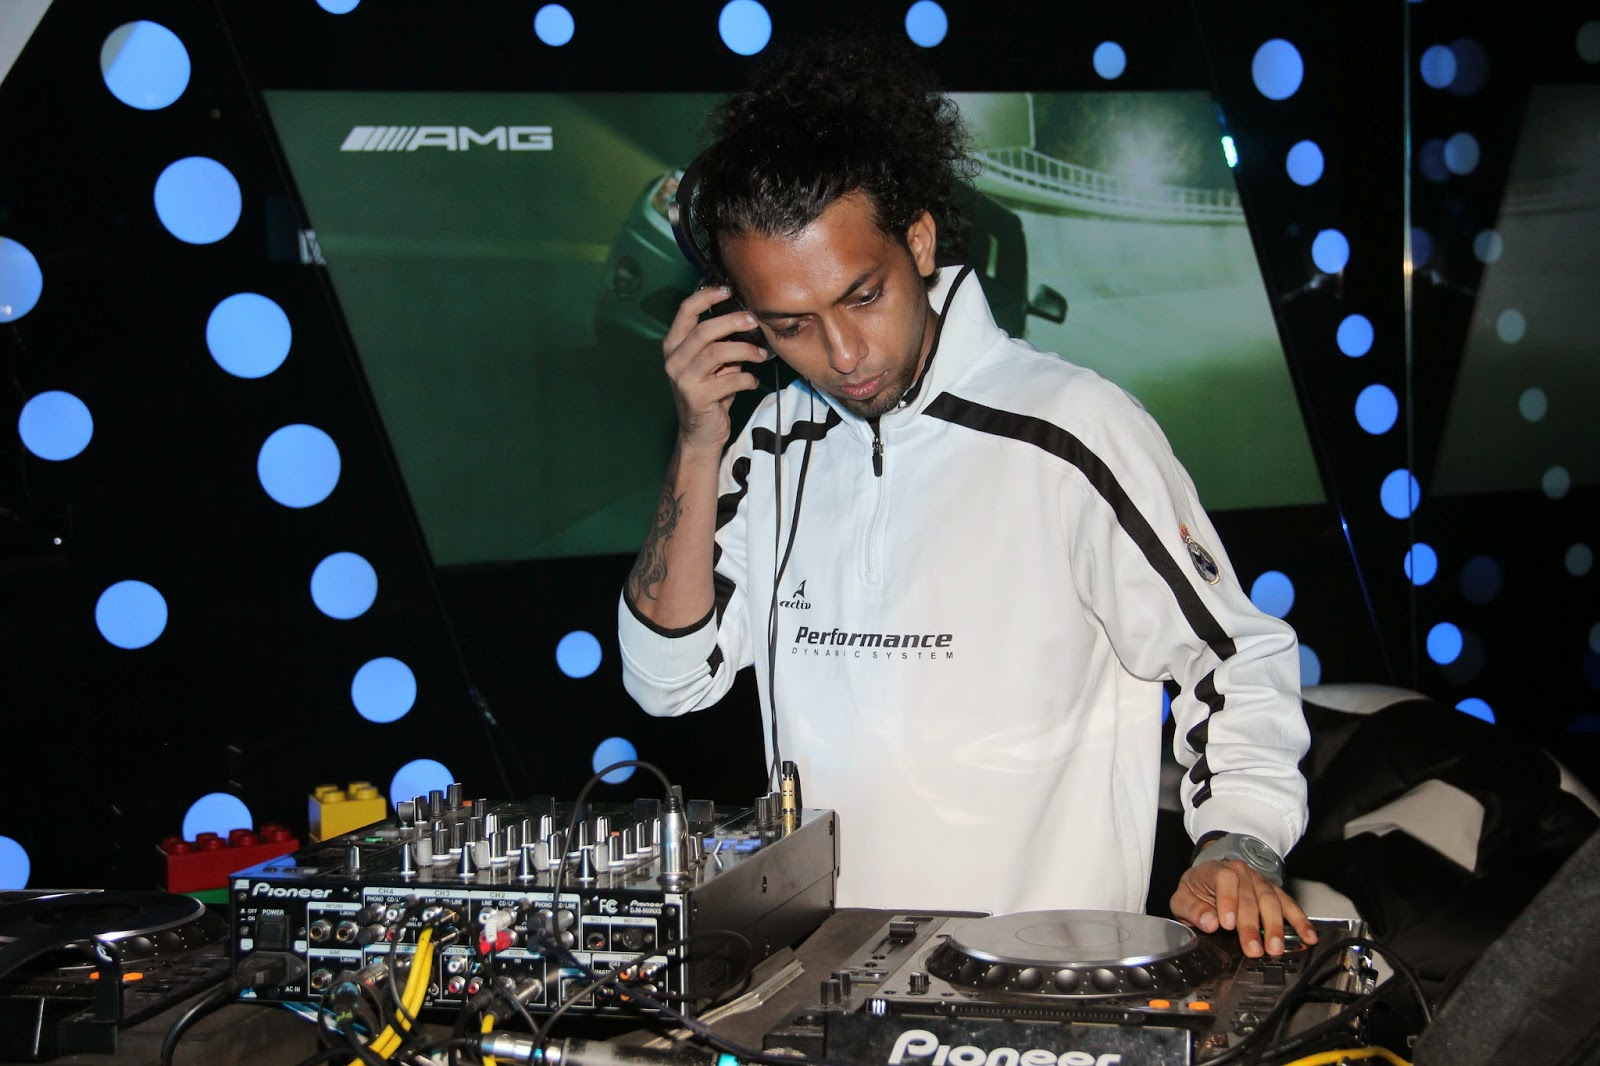 DJ Summit playing at Mercedes-Benz GLA-Class Preview at Shaman Wheels,Kalina